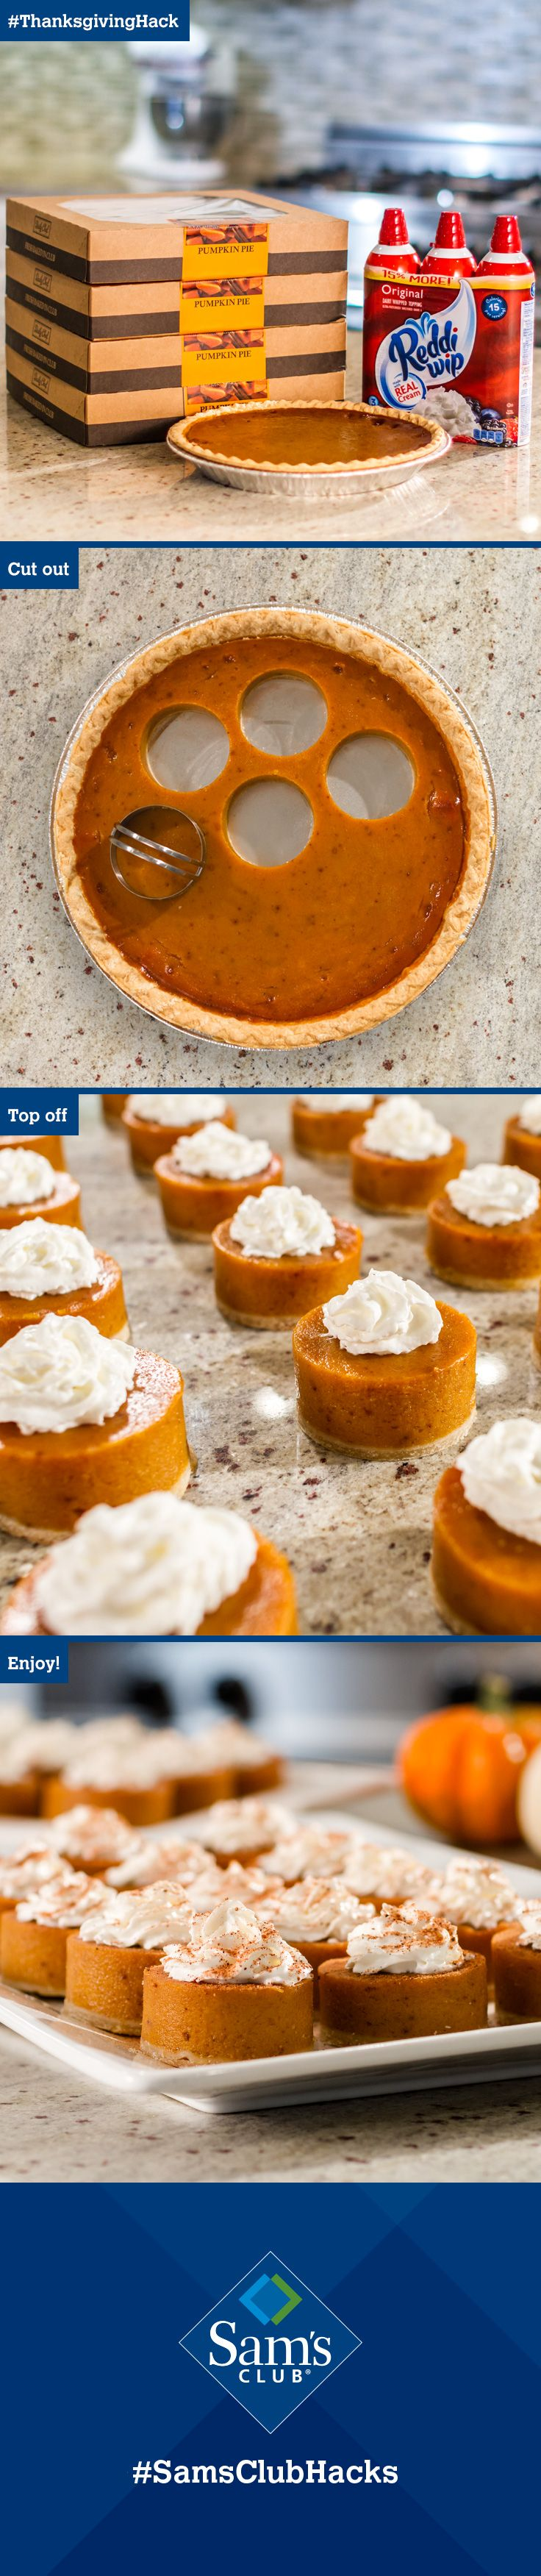 """Family will gobble up this easy #ThanksgivingHack! Take a 2"""" biscuit cutter to four Sam's Club pumpkin pies and voila! Adorable minis for 32 guests. Top off with Reddi-wip and SERVE IMMEDIATELY. Happy Thanksgiving! #SamsClubHacks More"""